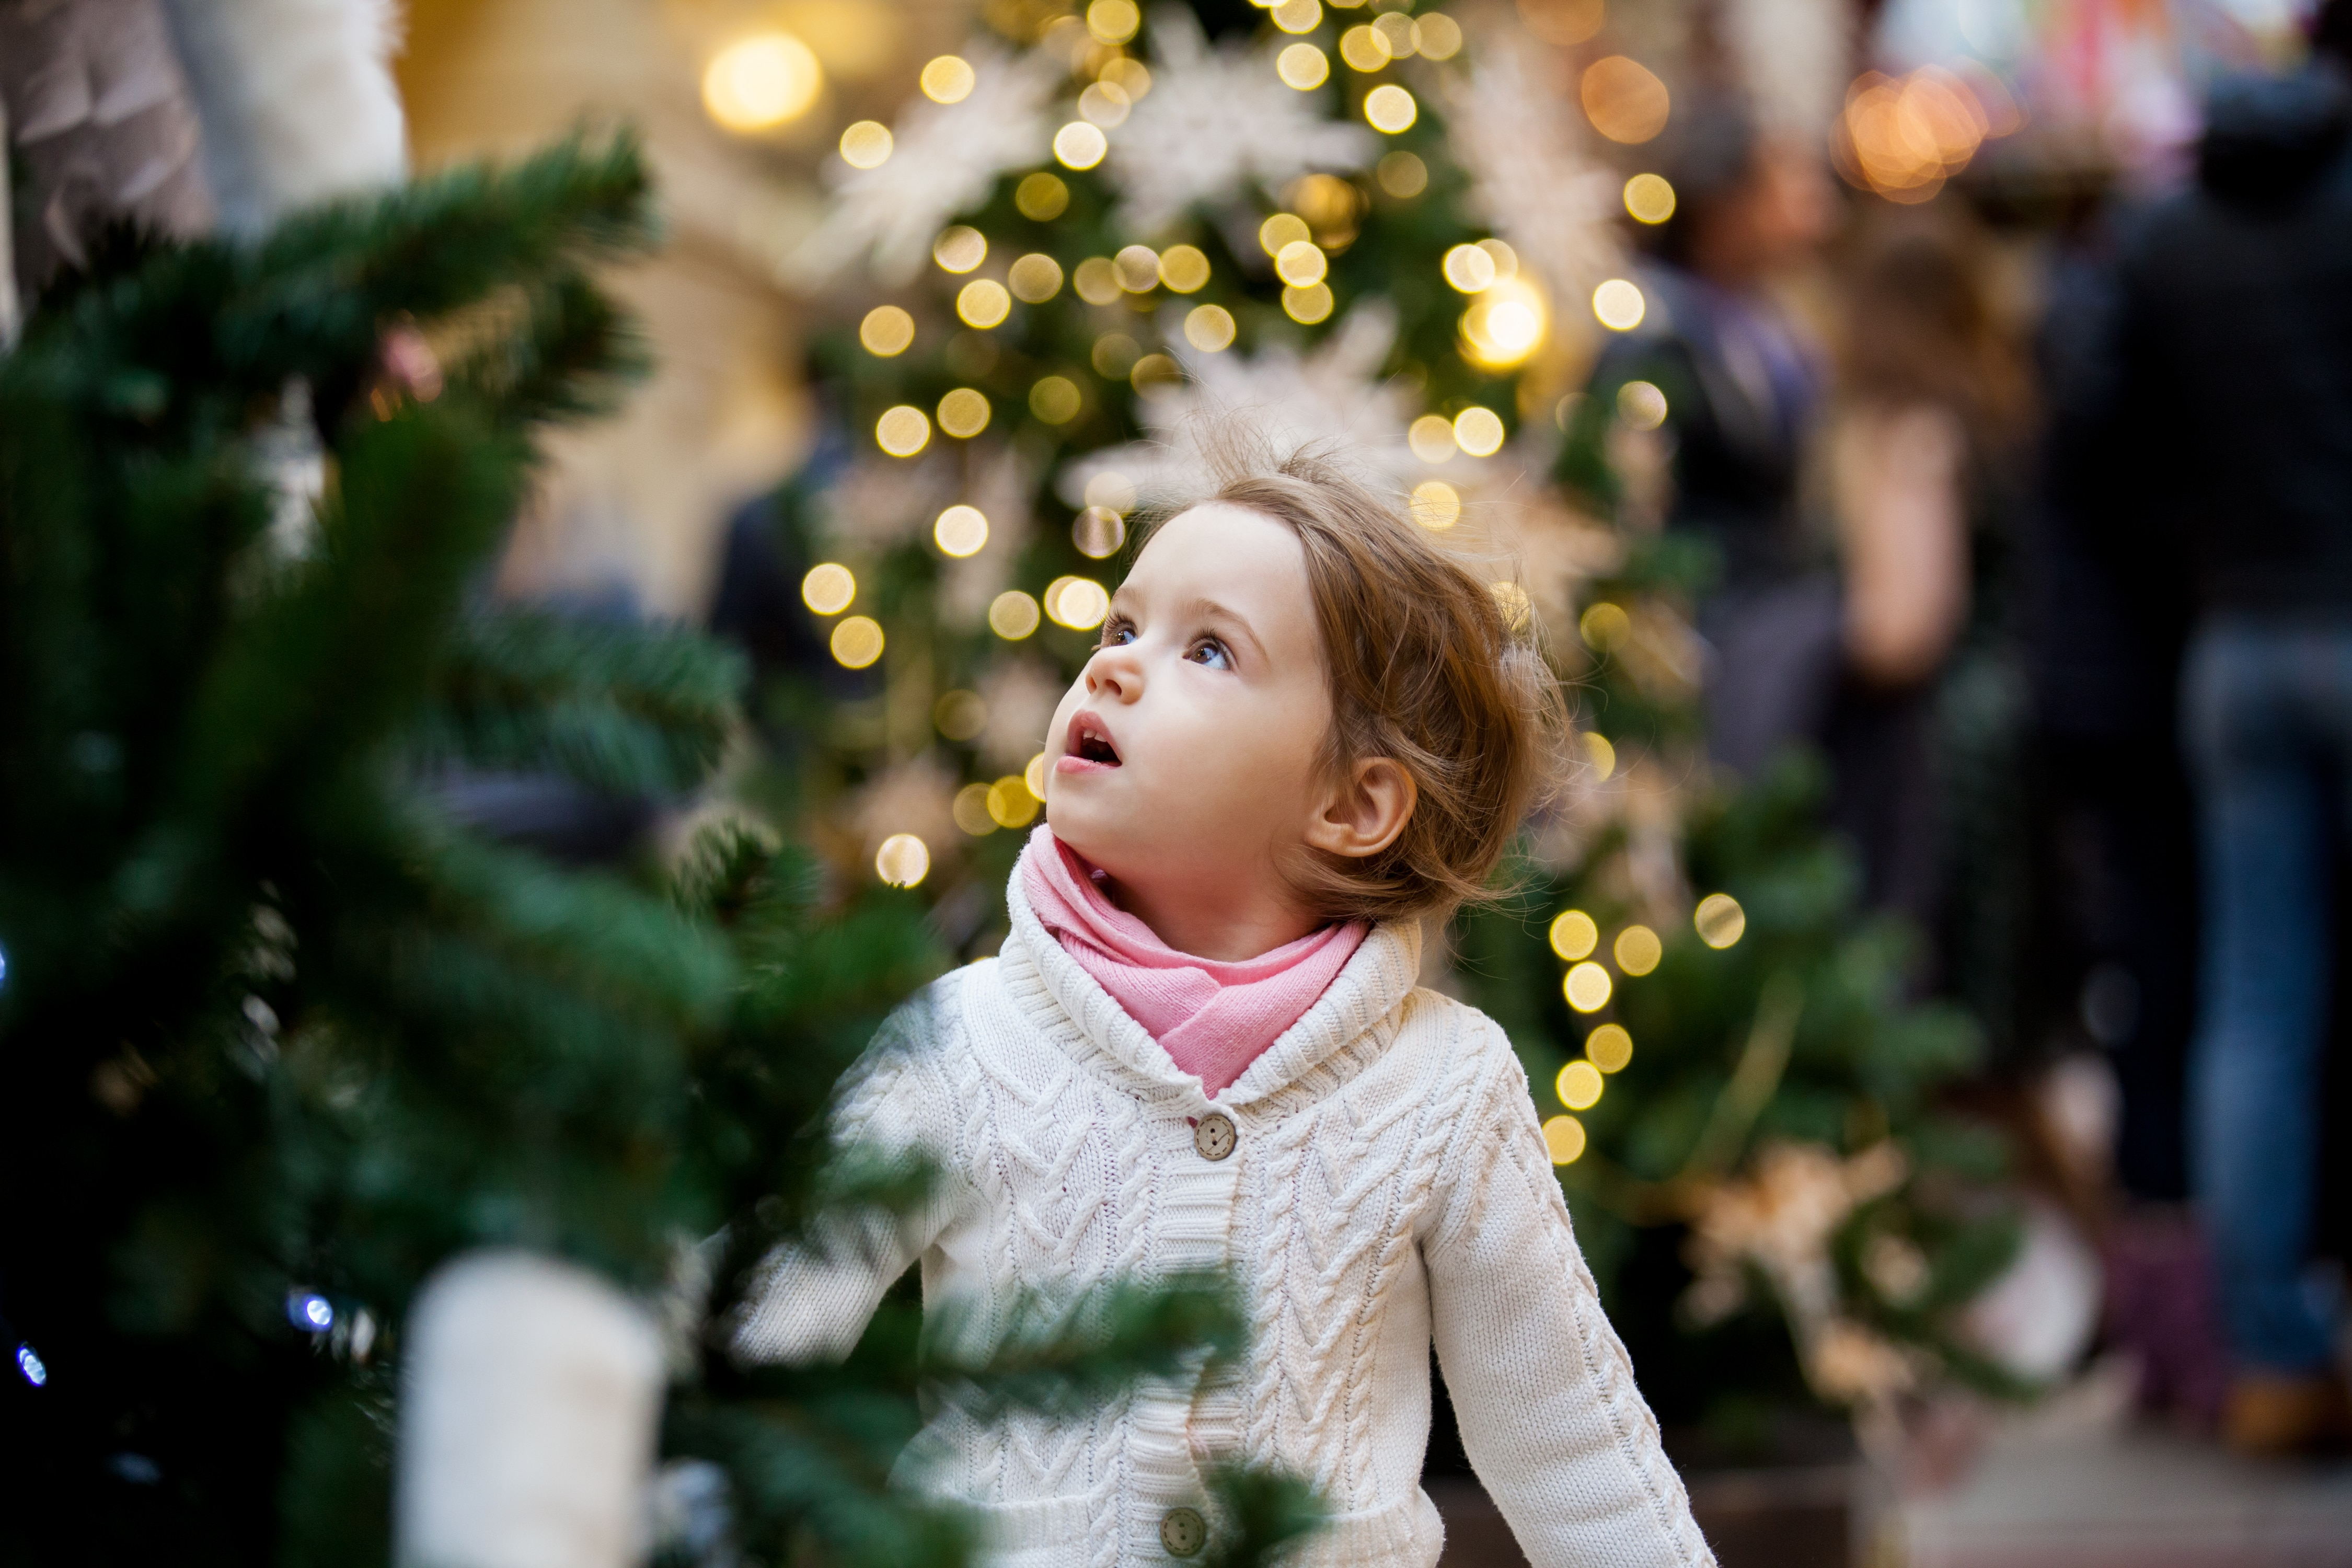 Little girl looking up in awe at Christmas lights.